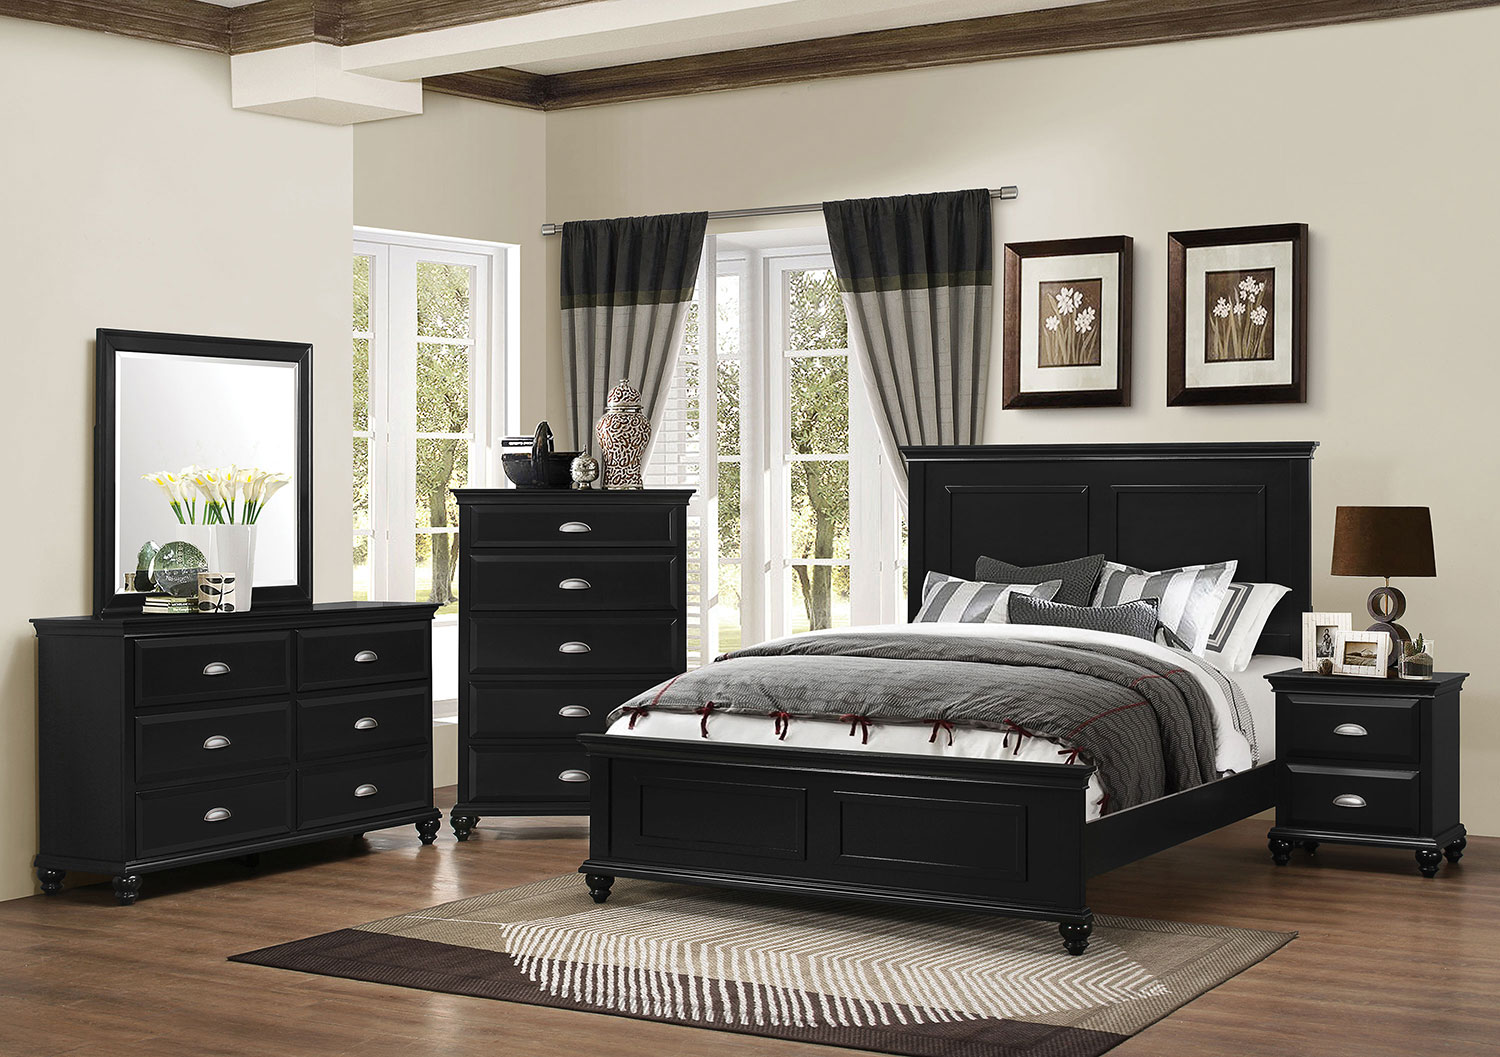 bedroom levin furniture 12080 | 490460 fit inside 320 320 composite to center center 320 320 background color white